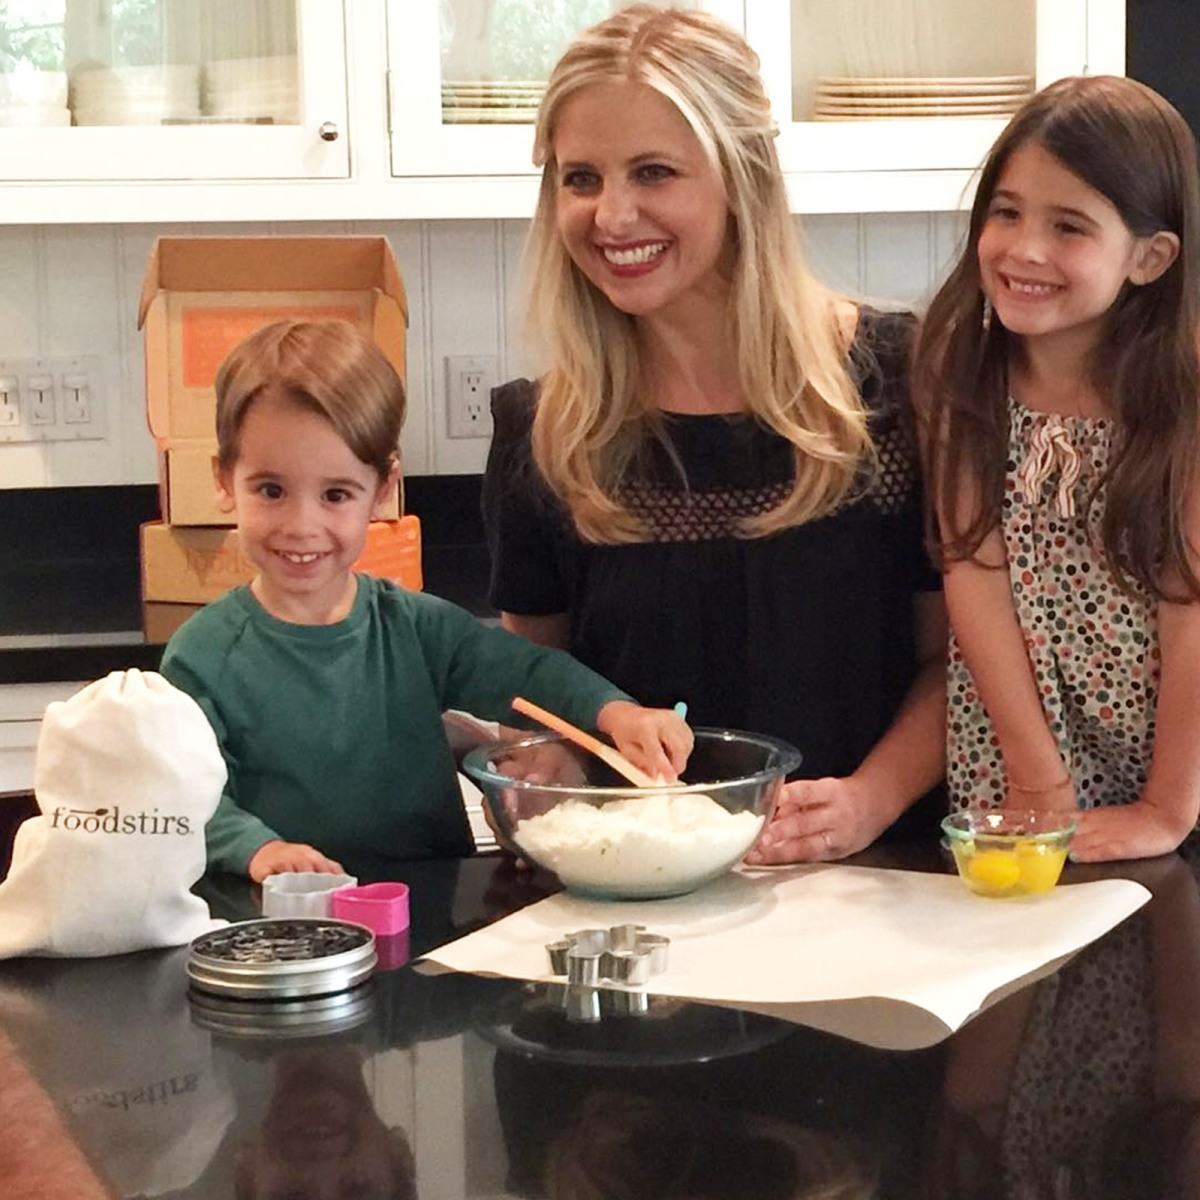 Sarah Michelle Gellar and her husband Freddie Prinze Jr are definitely one fun couple she posted a video of him poking fun at her for the amount of